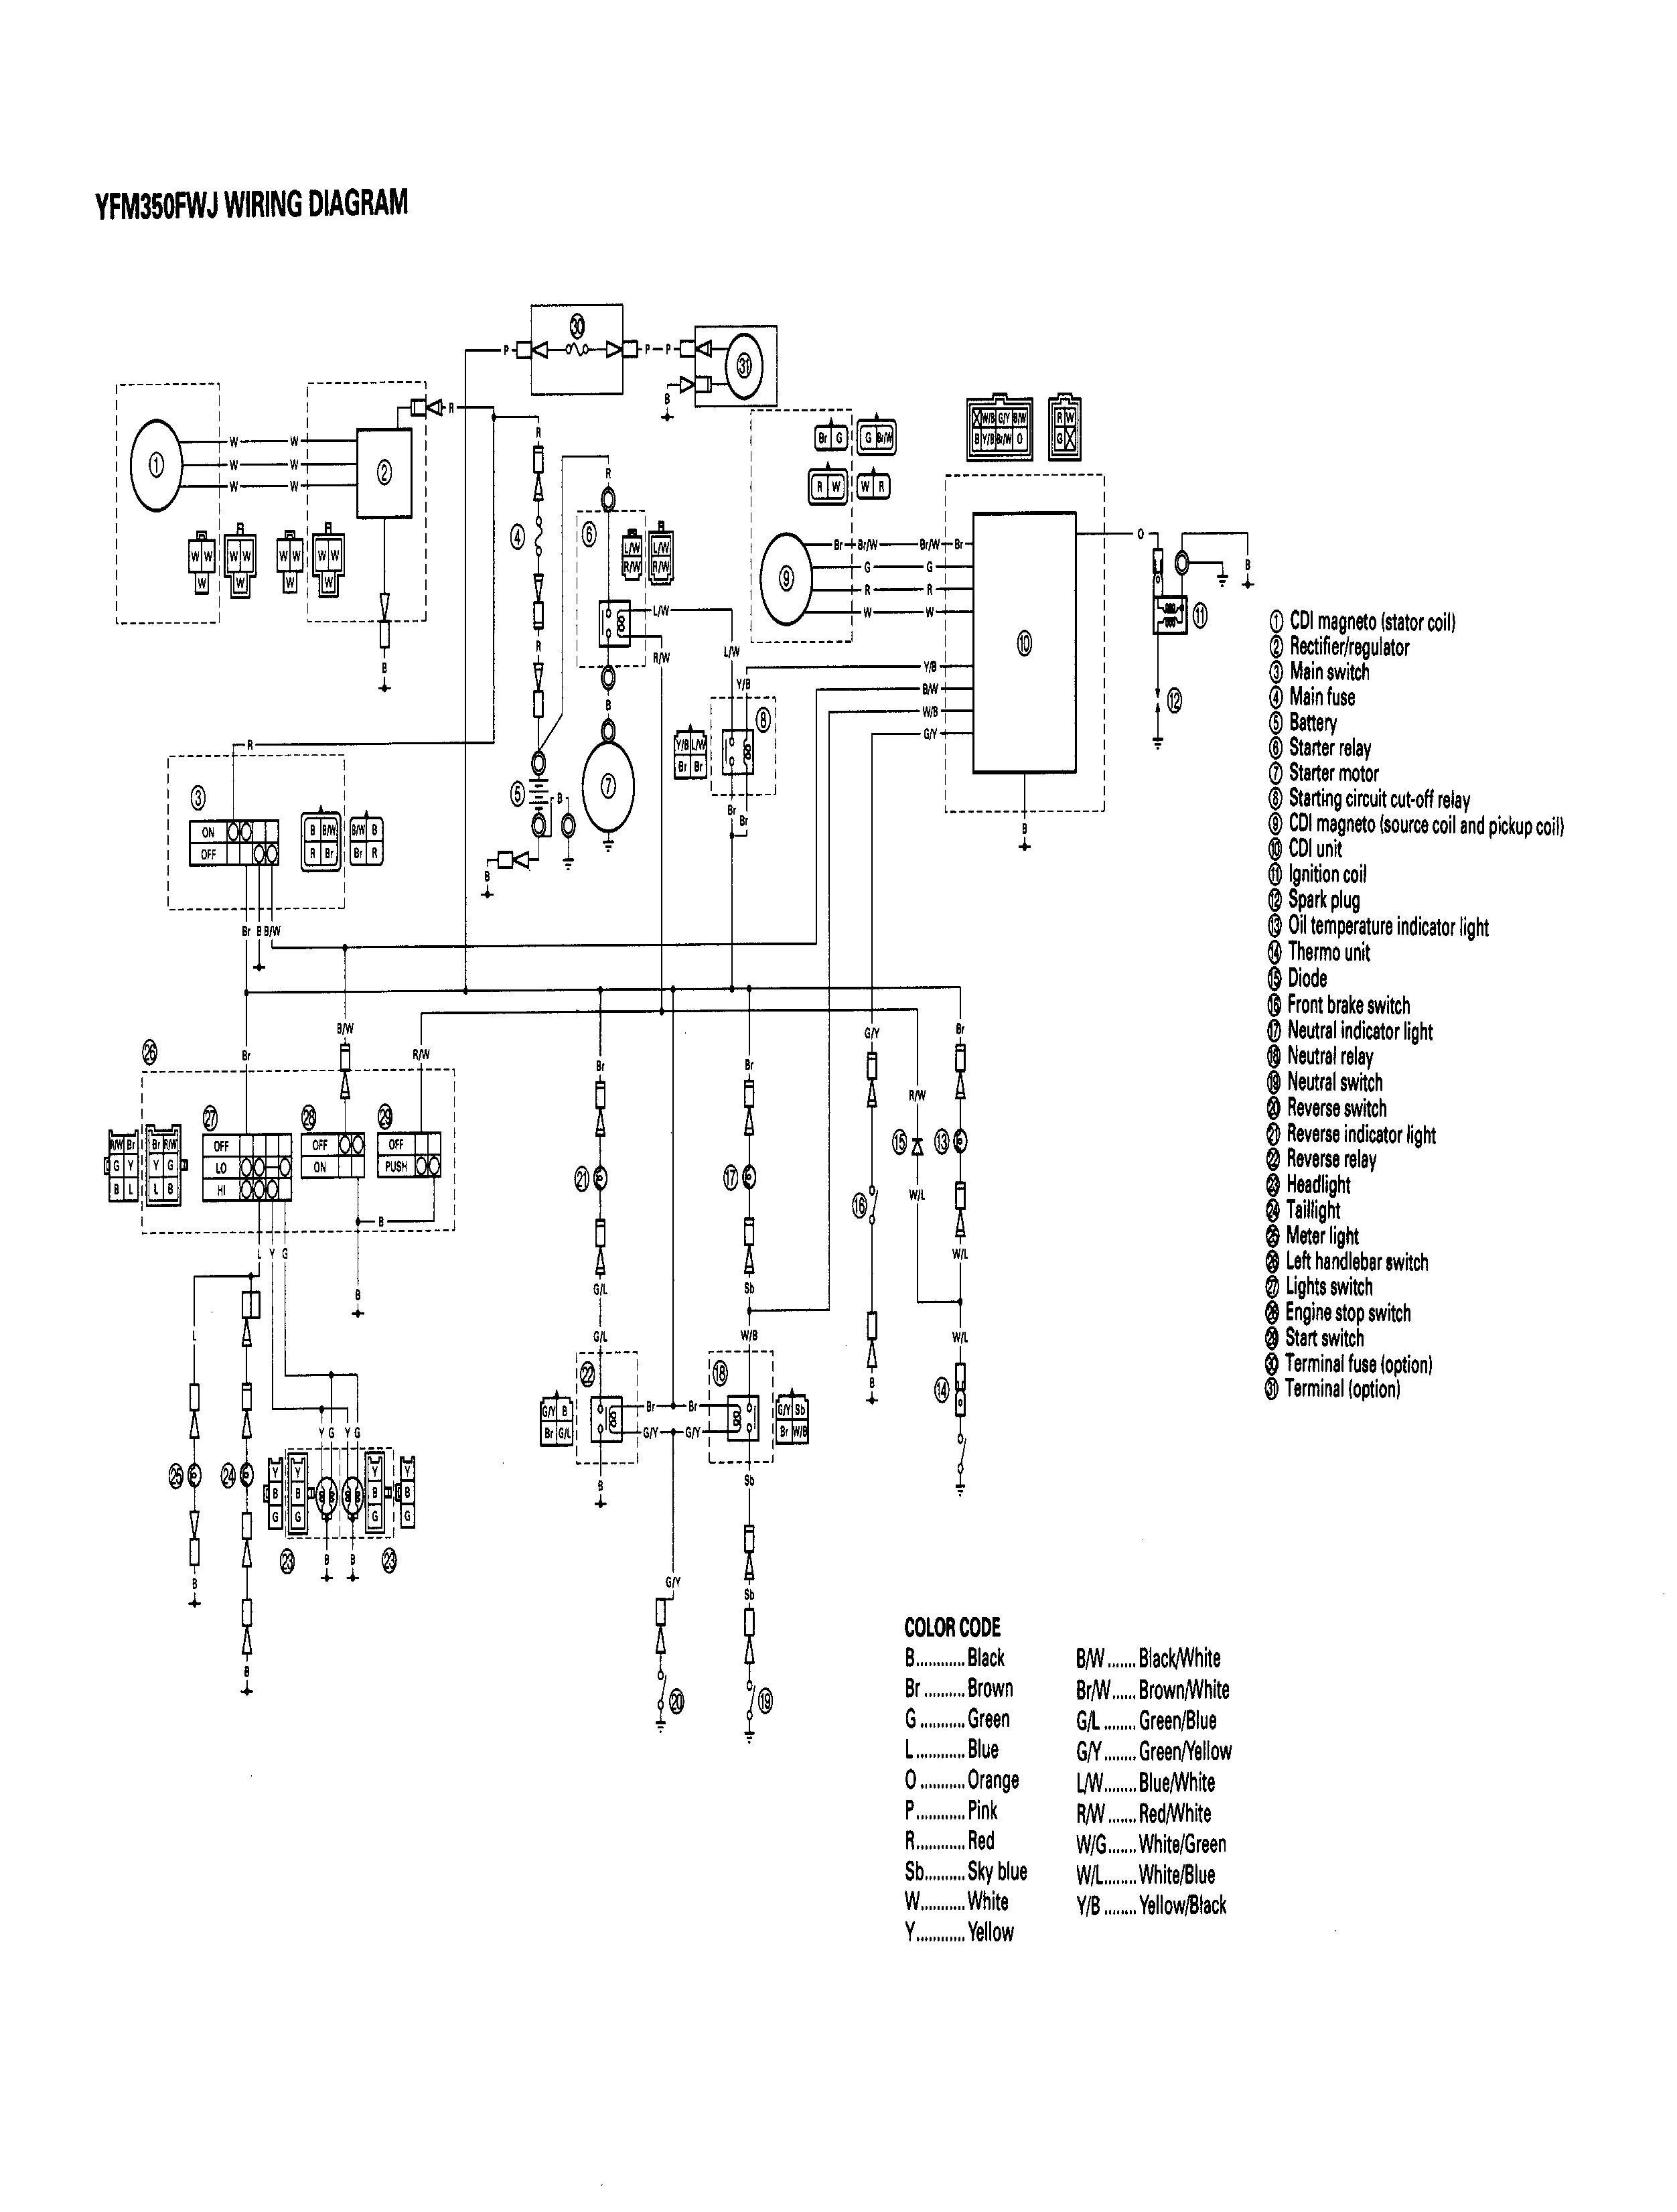 93346 1996 Bigbear 350 4x4 Wiring: 1988 Yamaha Warrior Wiring Diagram At Galaxydownloads.co